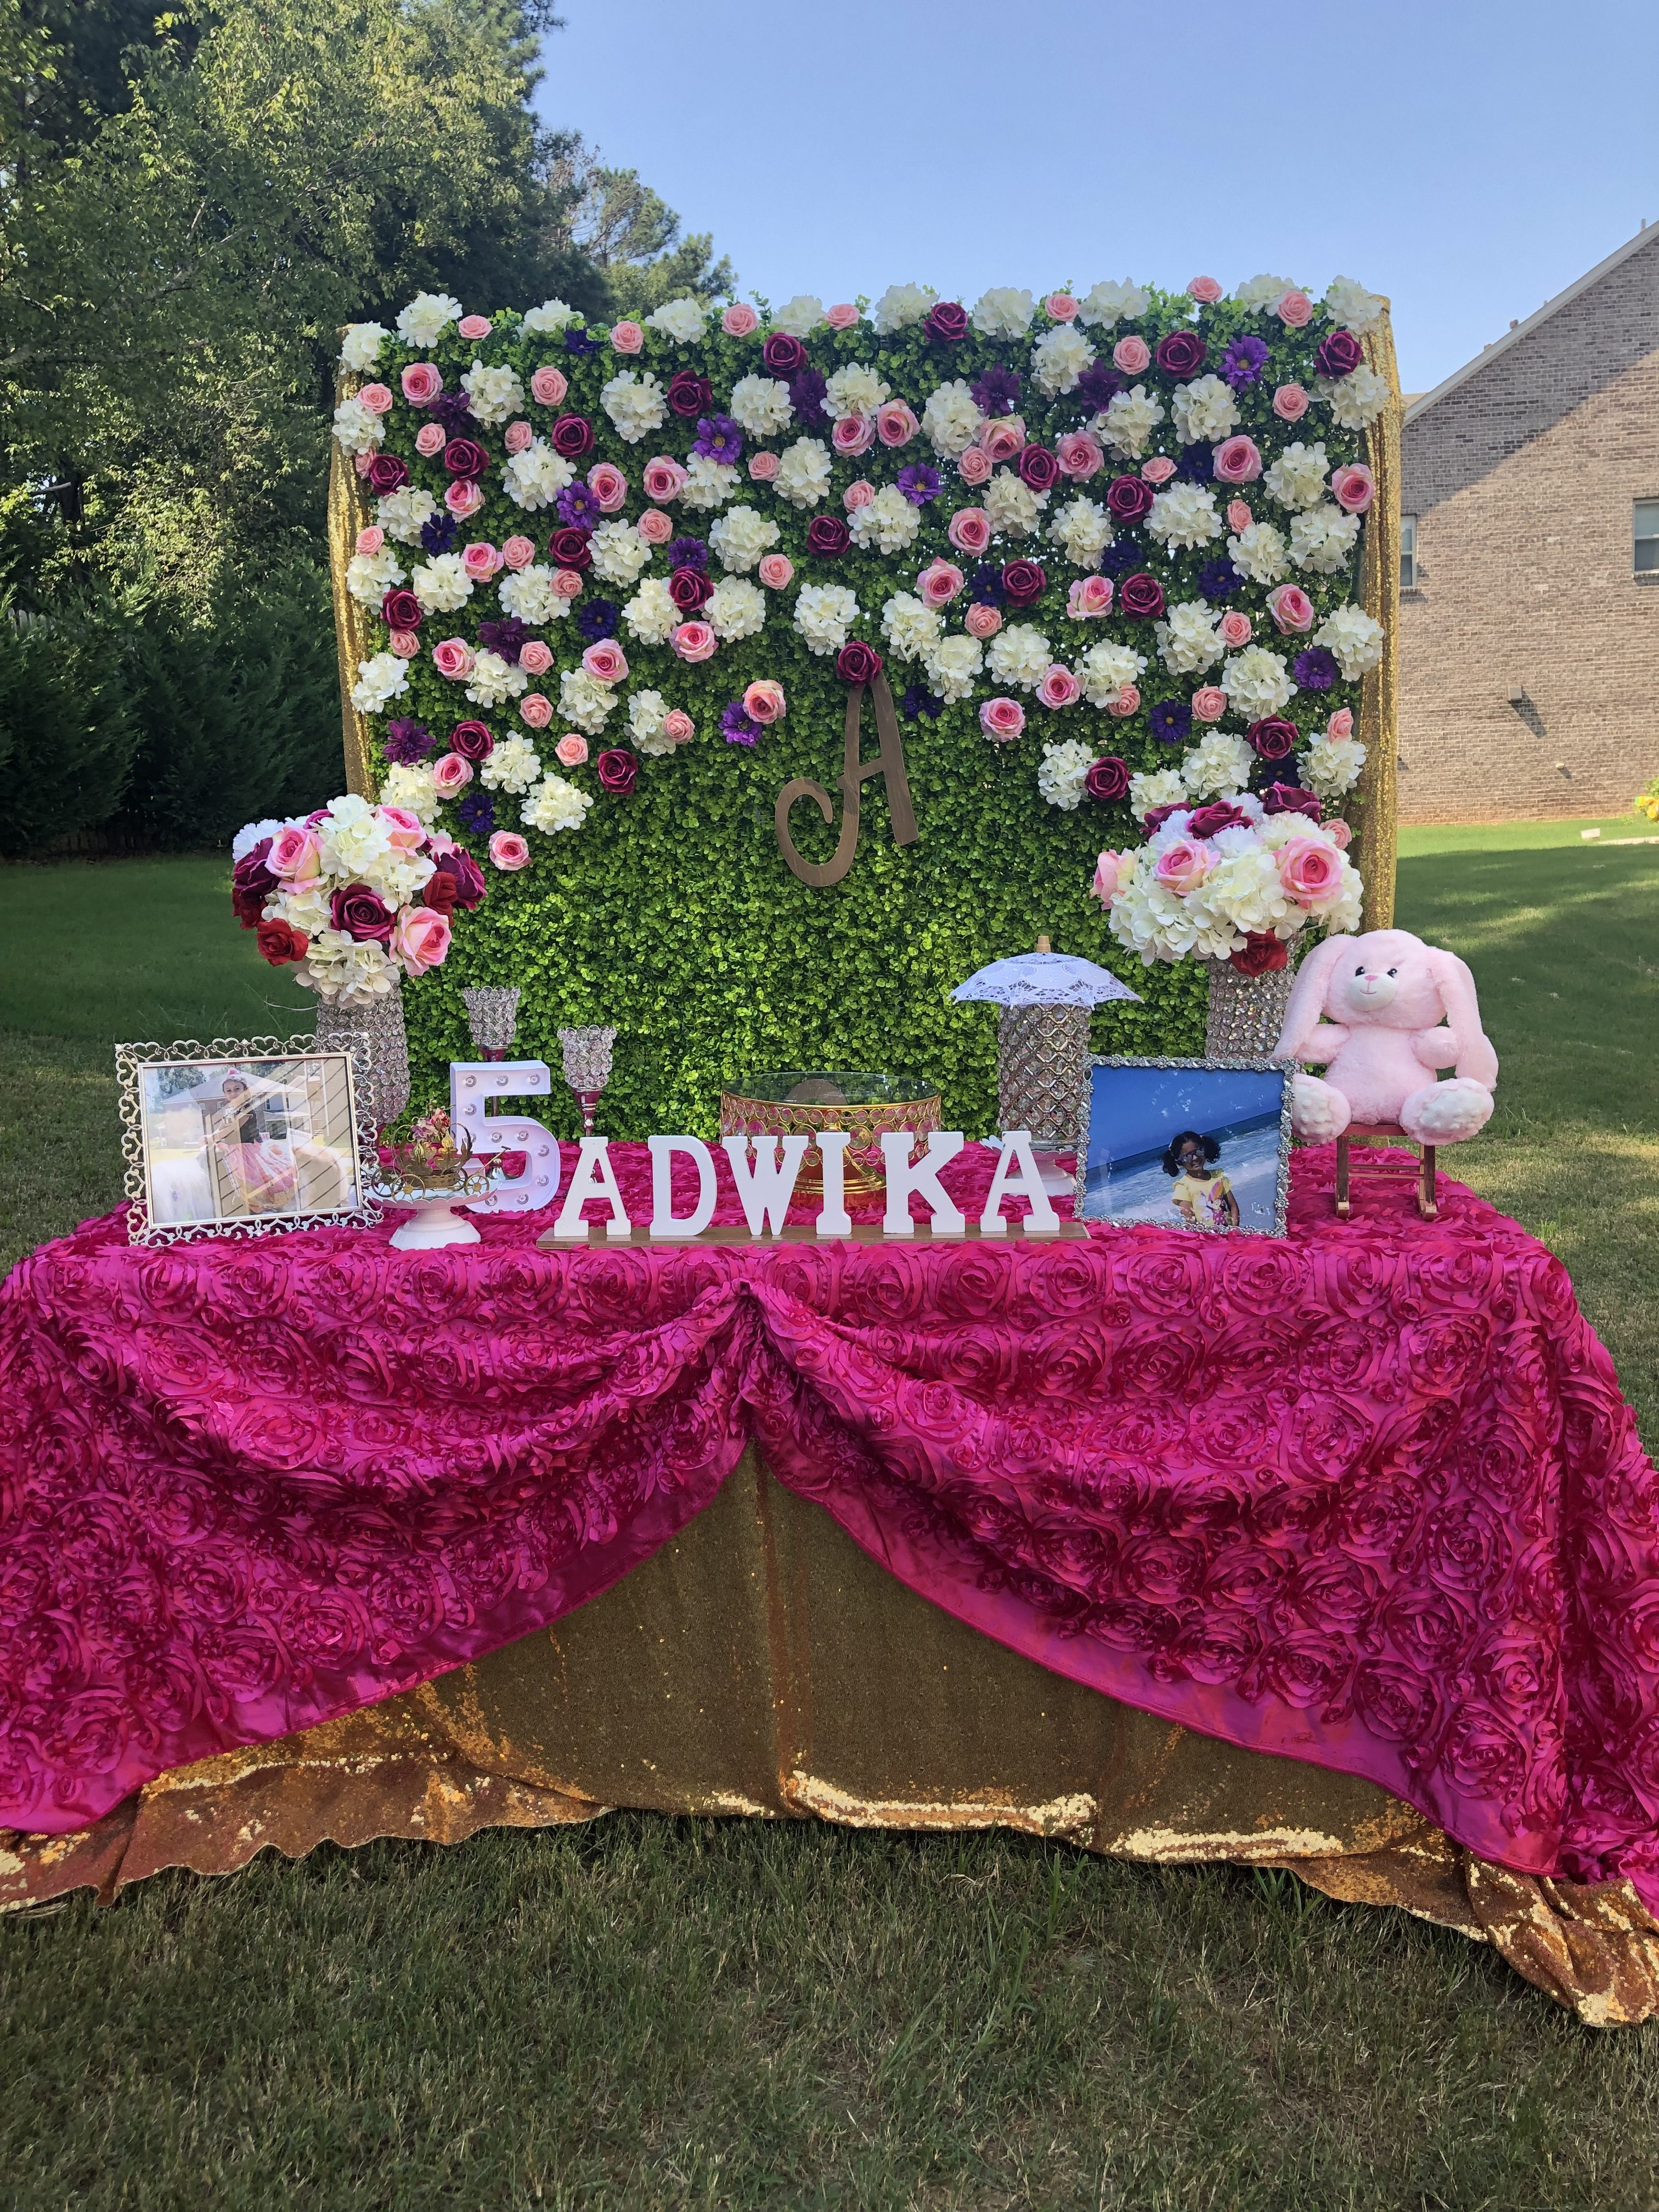 5th Birthday Outdoor Decorations Grass Backdrop With Flowers In Alpharetta Ga Anju Events Decorations Best Party Event Planning And Decorations In Atlanta Birthday Parties Graduation Parties More